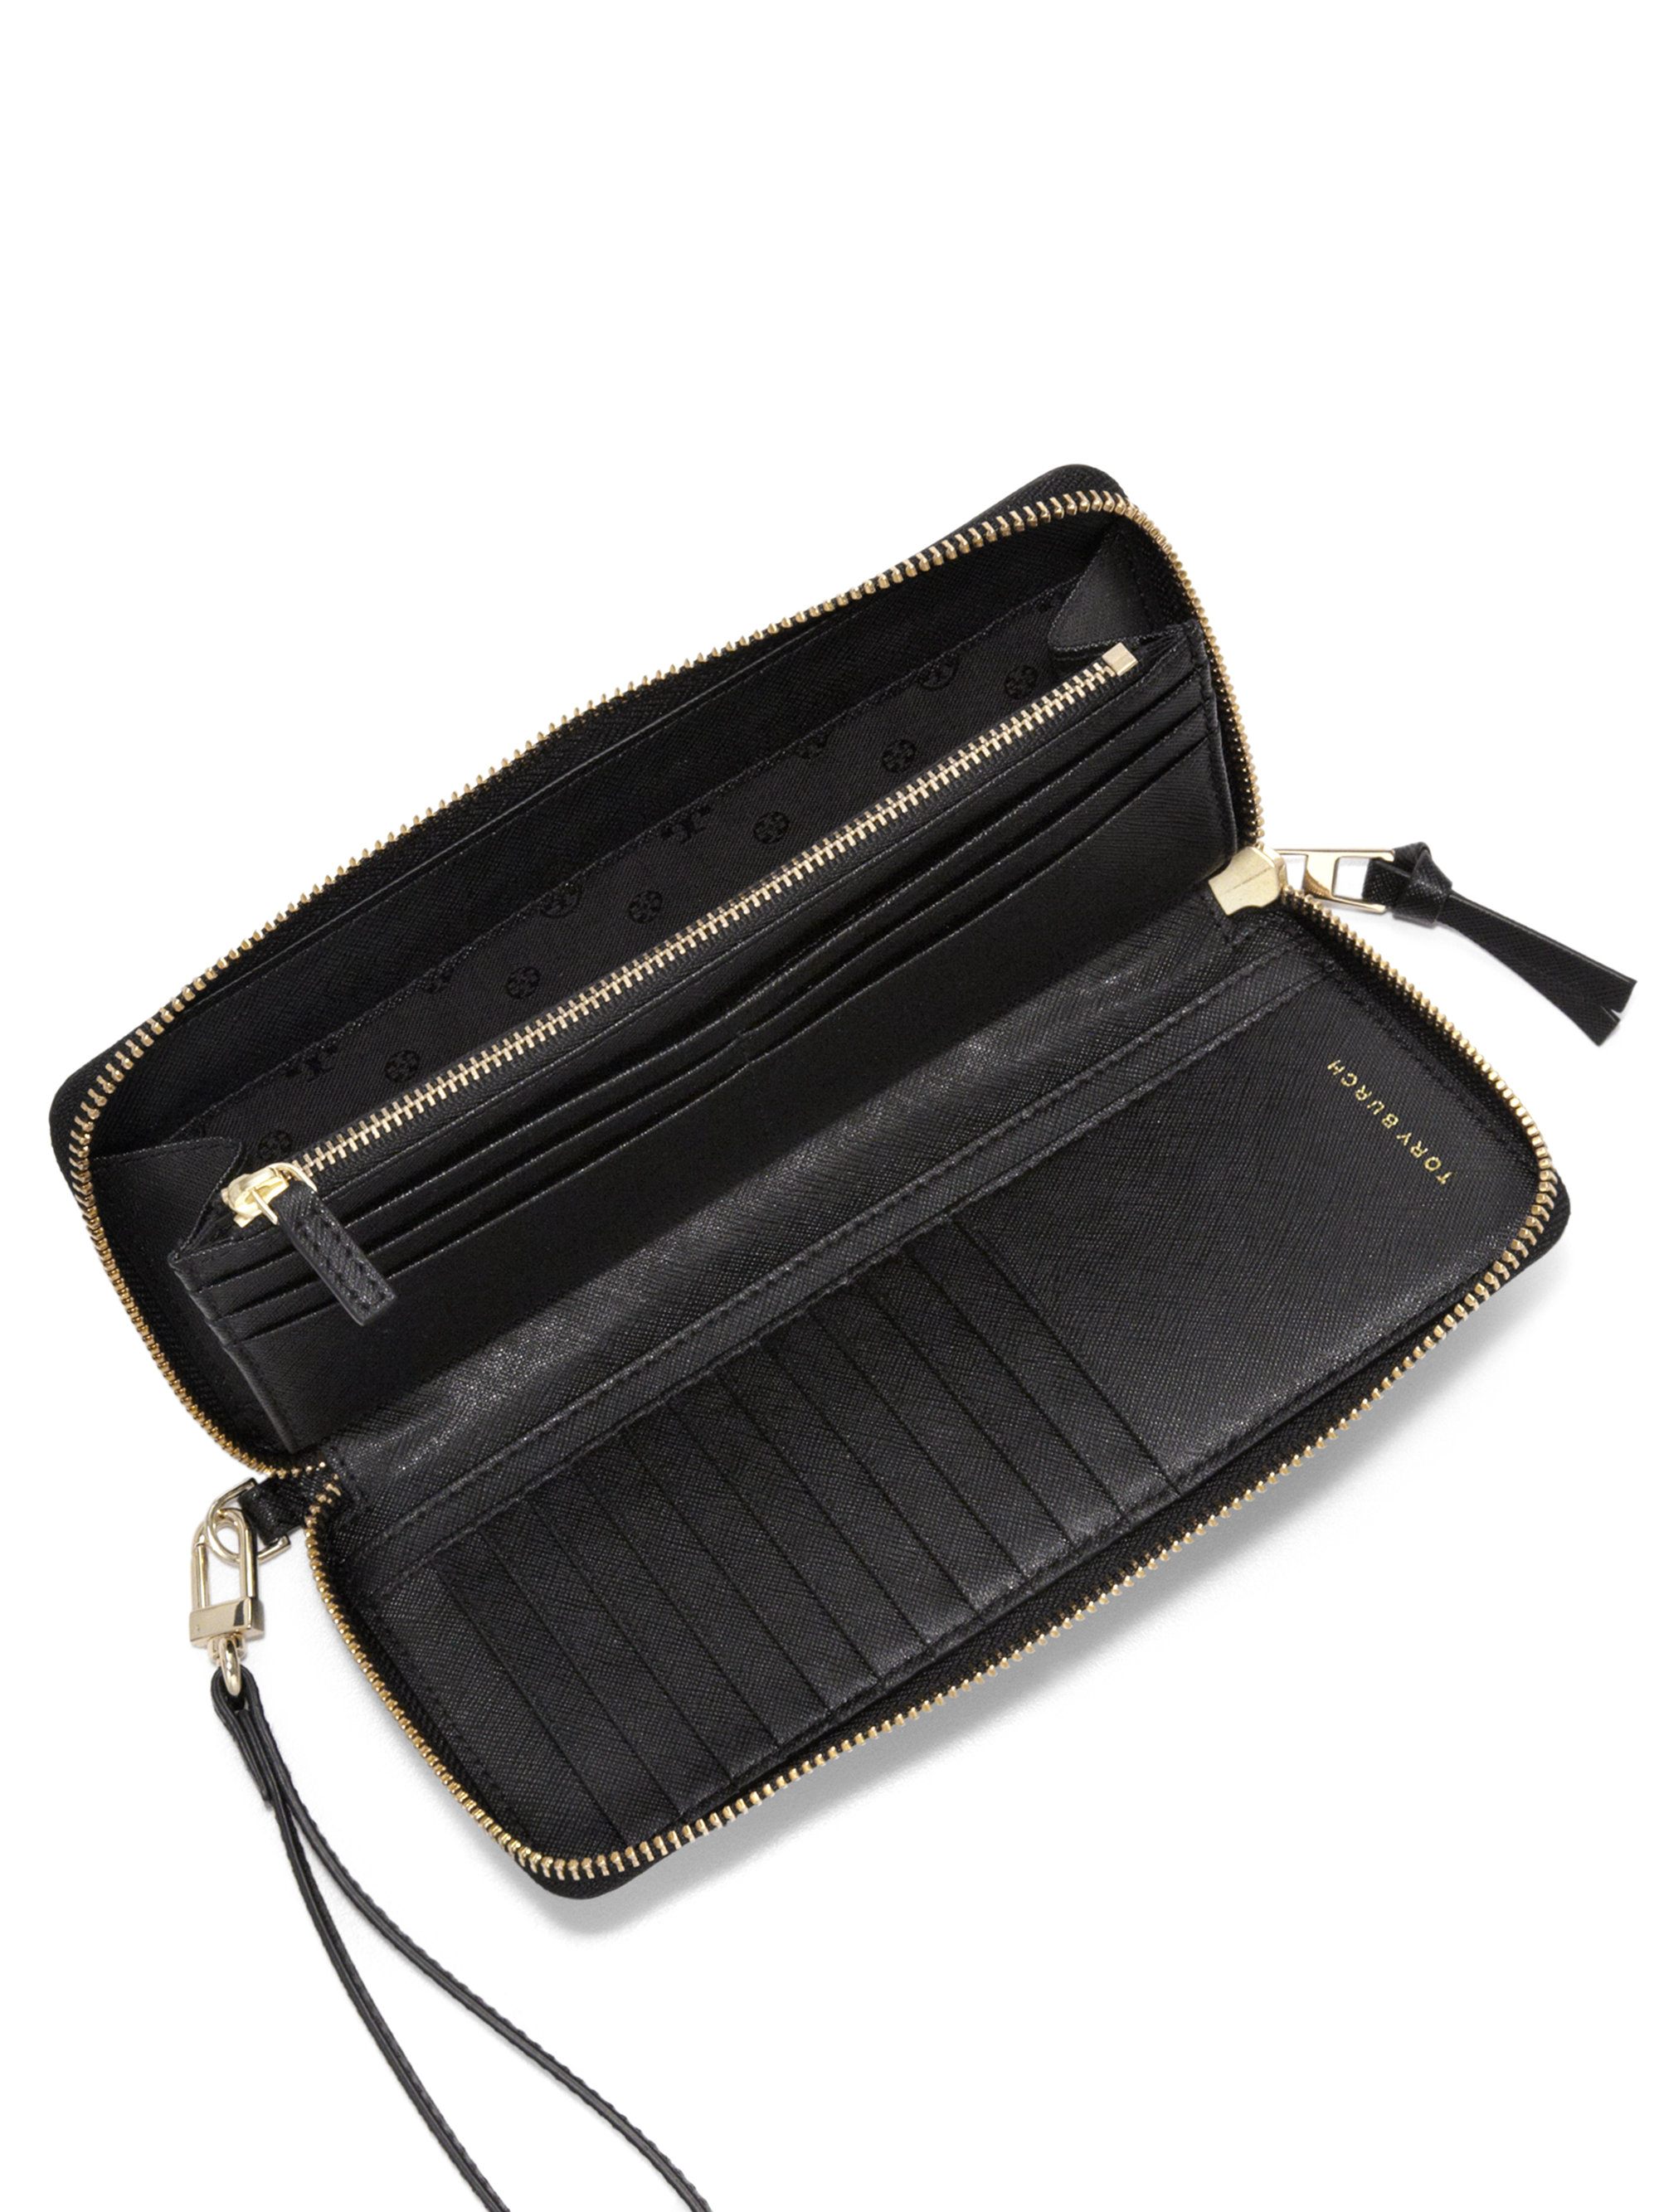 59e23175891ac Lyst - Tory Burch Robinson Stitched Leather Wristlet Wallet in Black